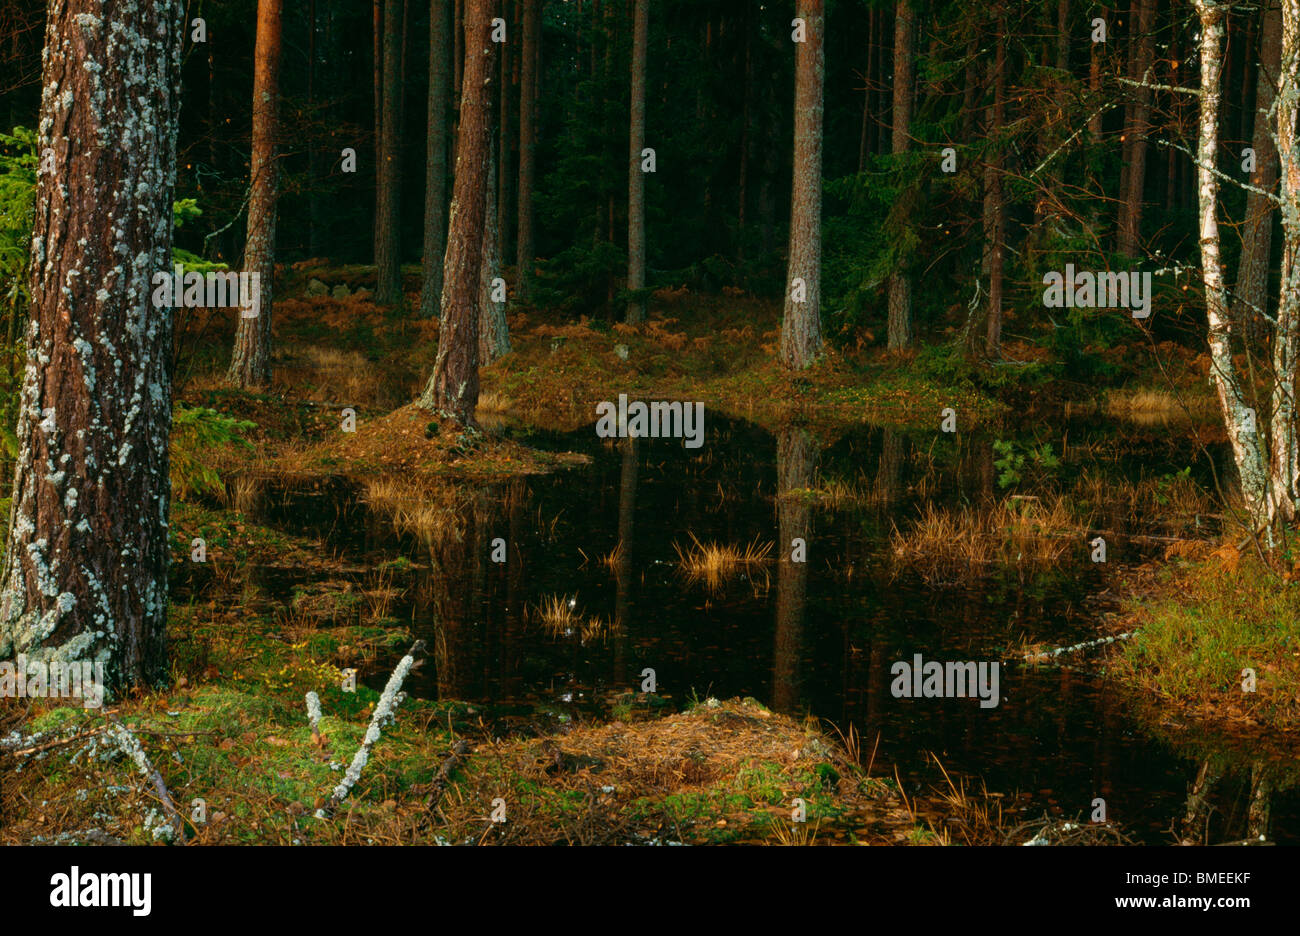 View of stream in coniferous forest - Stock Image